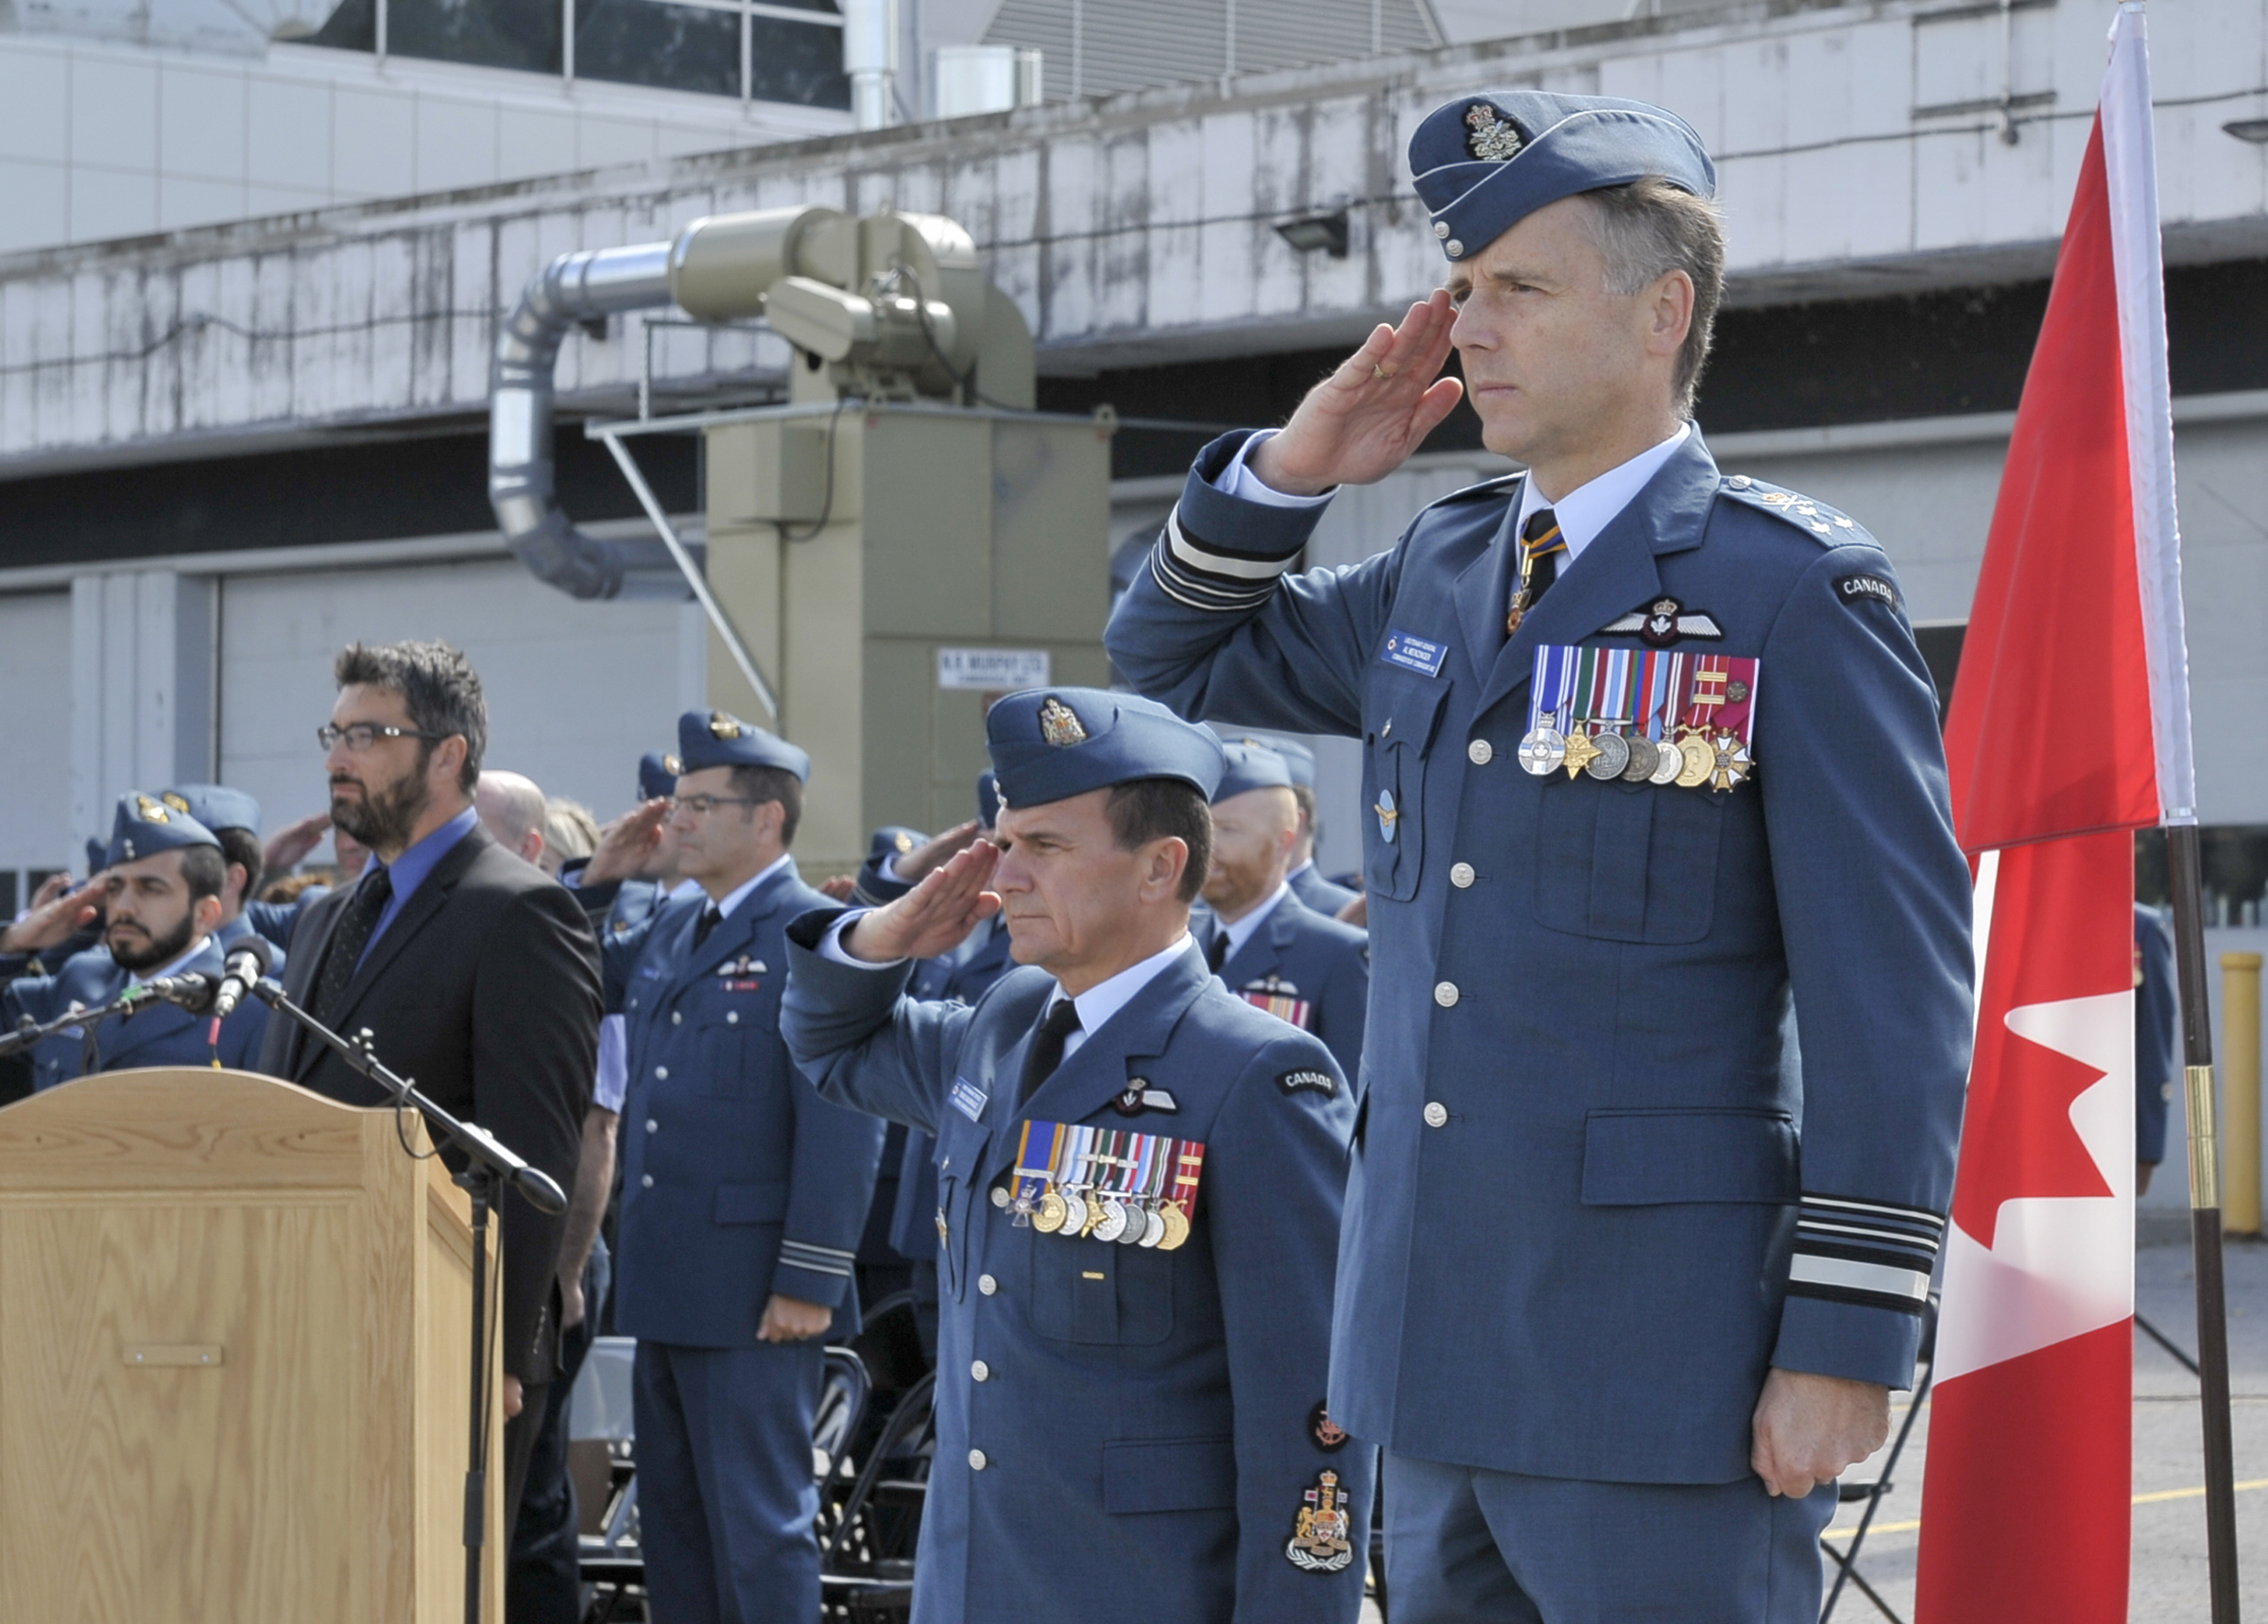 The commander of the RCAF, Lieutenant-General Al Meinzinger, and the command chief warrant officer of the RCAF, Chief Warrant Officer Denis Gaudreault, salute during the national Battle of Britain parade held September 15, 2019, at the Canada Aviation and Space Museum in Ottawa, Ontario. PHOTO: Aviator Jacob Hanlon, FA01-2019-0008-018